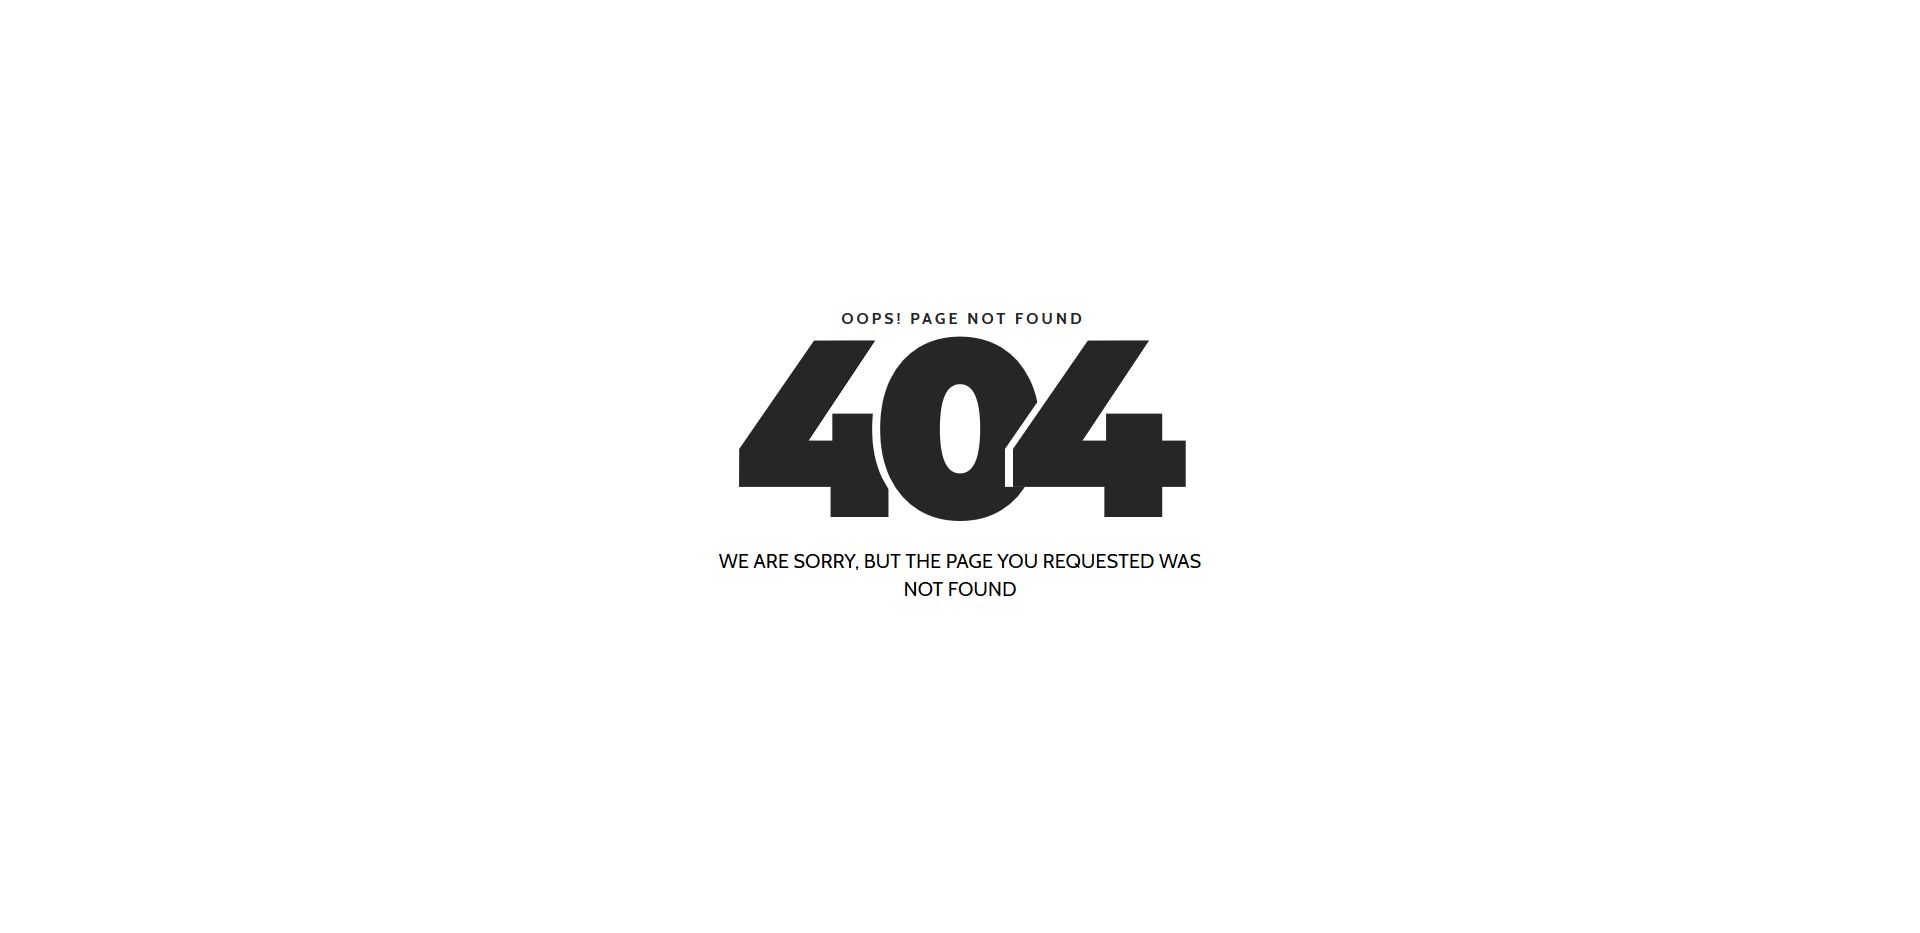 aacb14315c3d21 26 Best Easy To Use Free 404 Error Page Templates 2019 - Colorlib